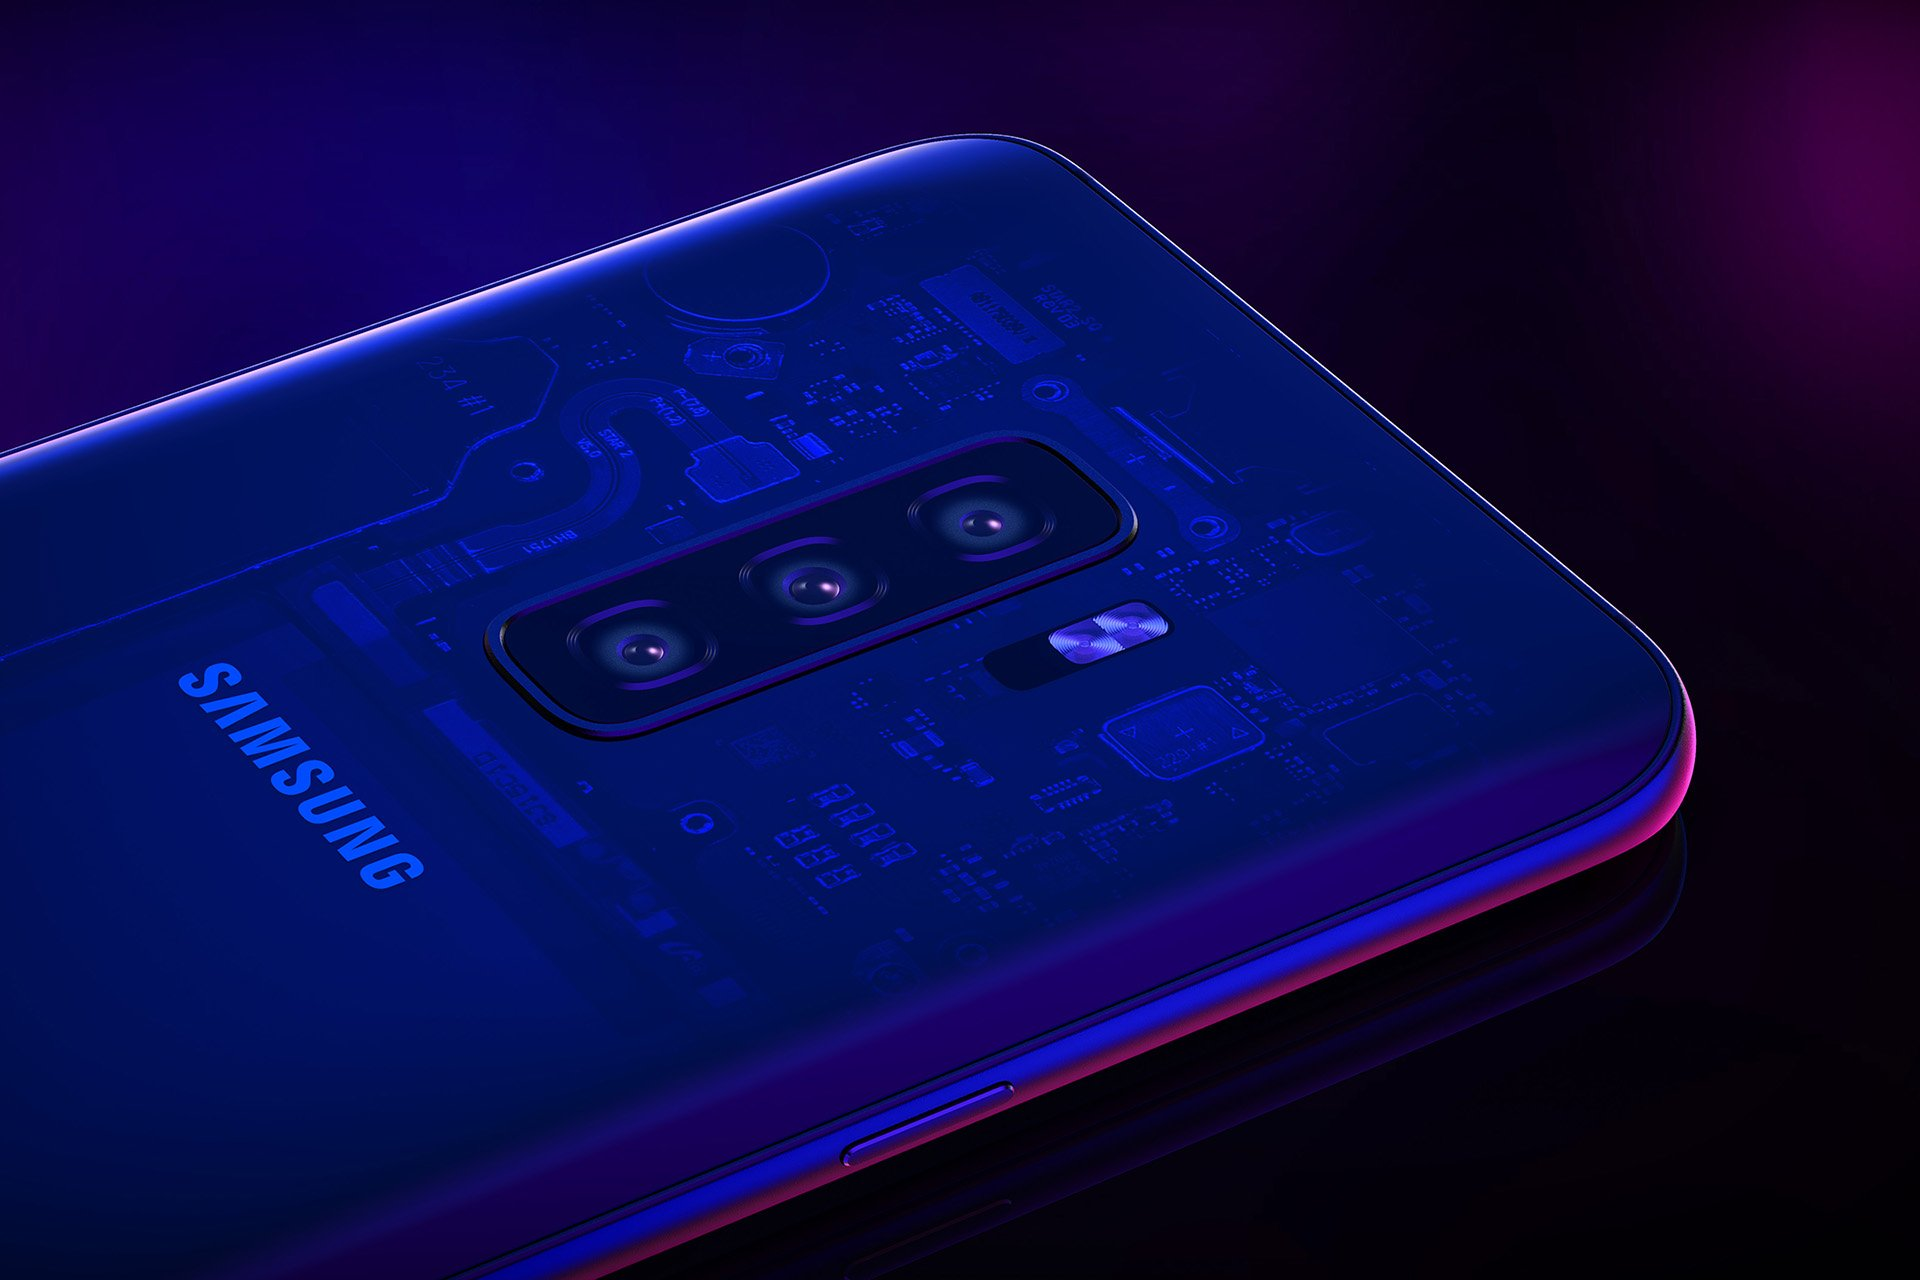 Samsung Galaxy S10 model names leaked